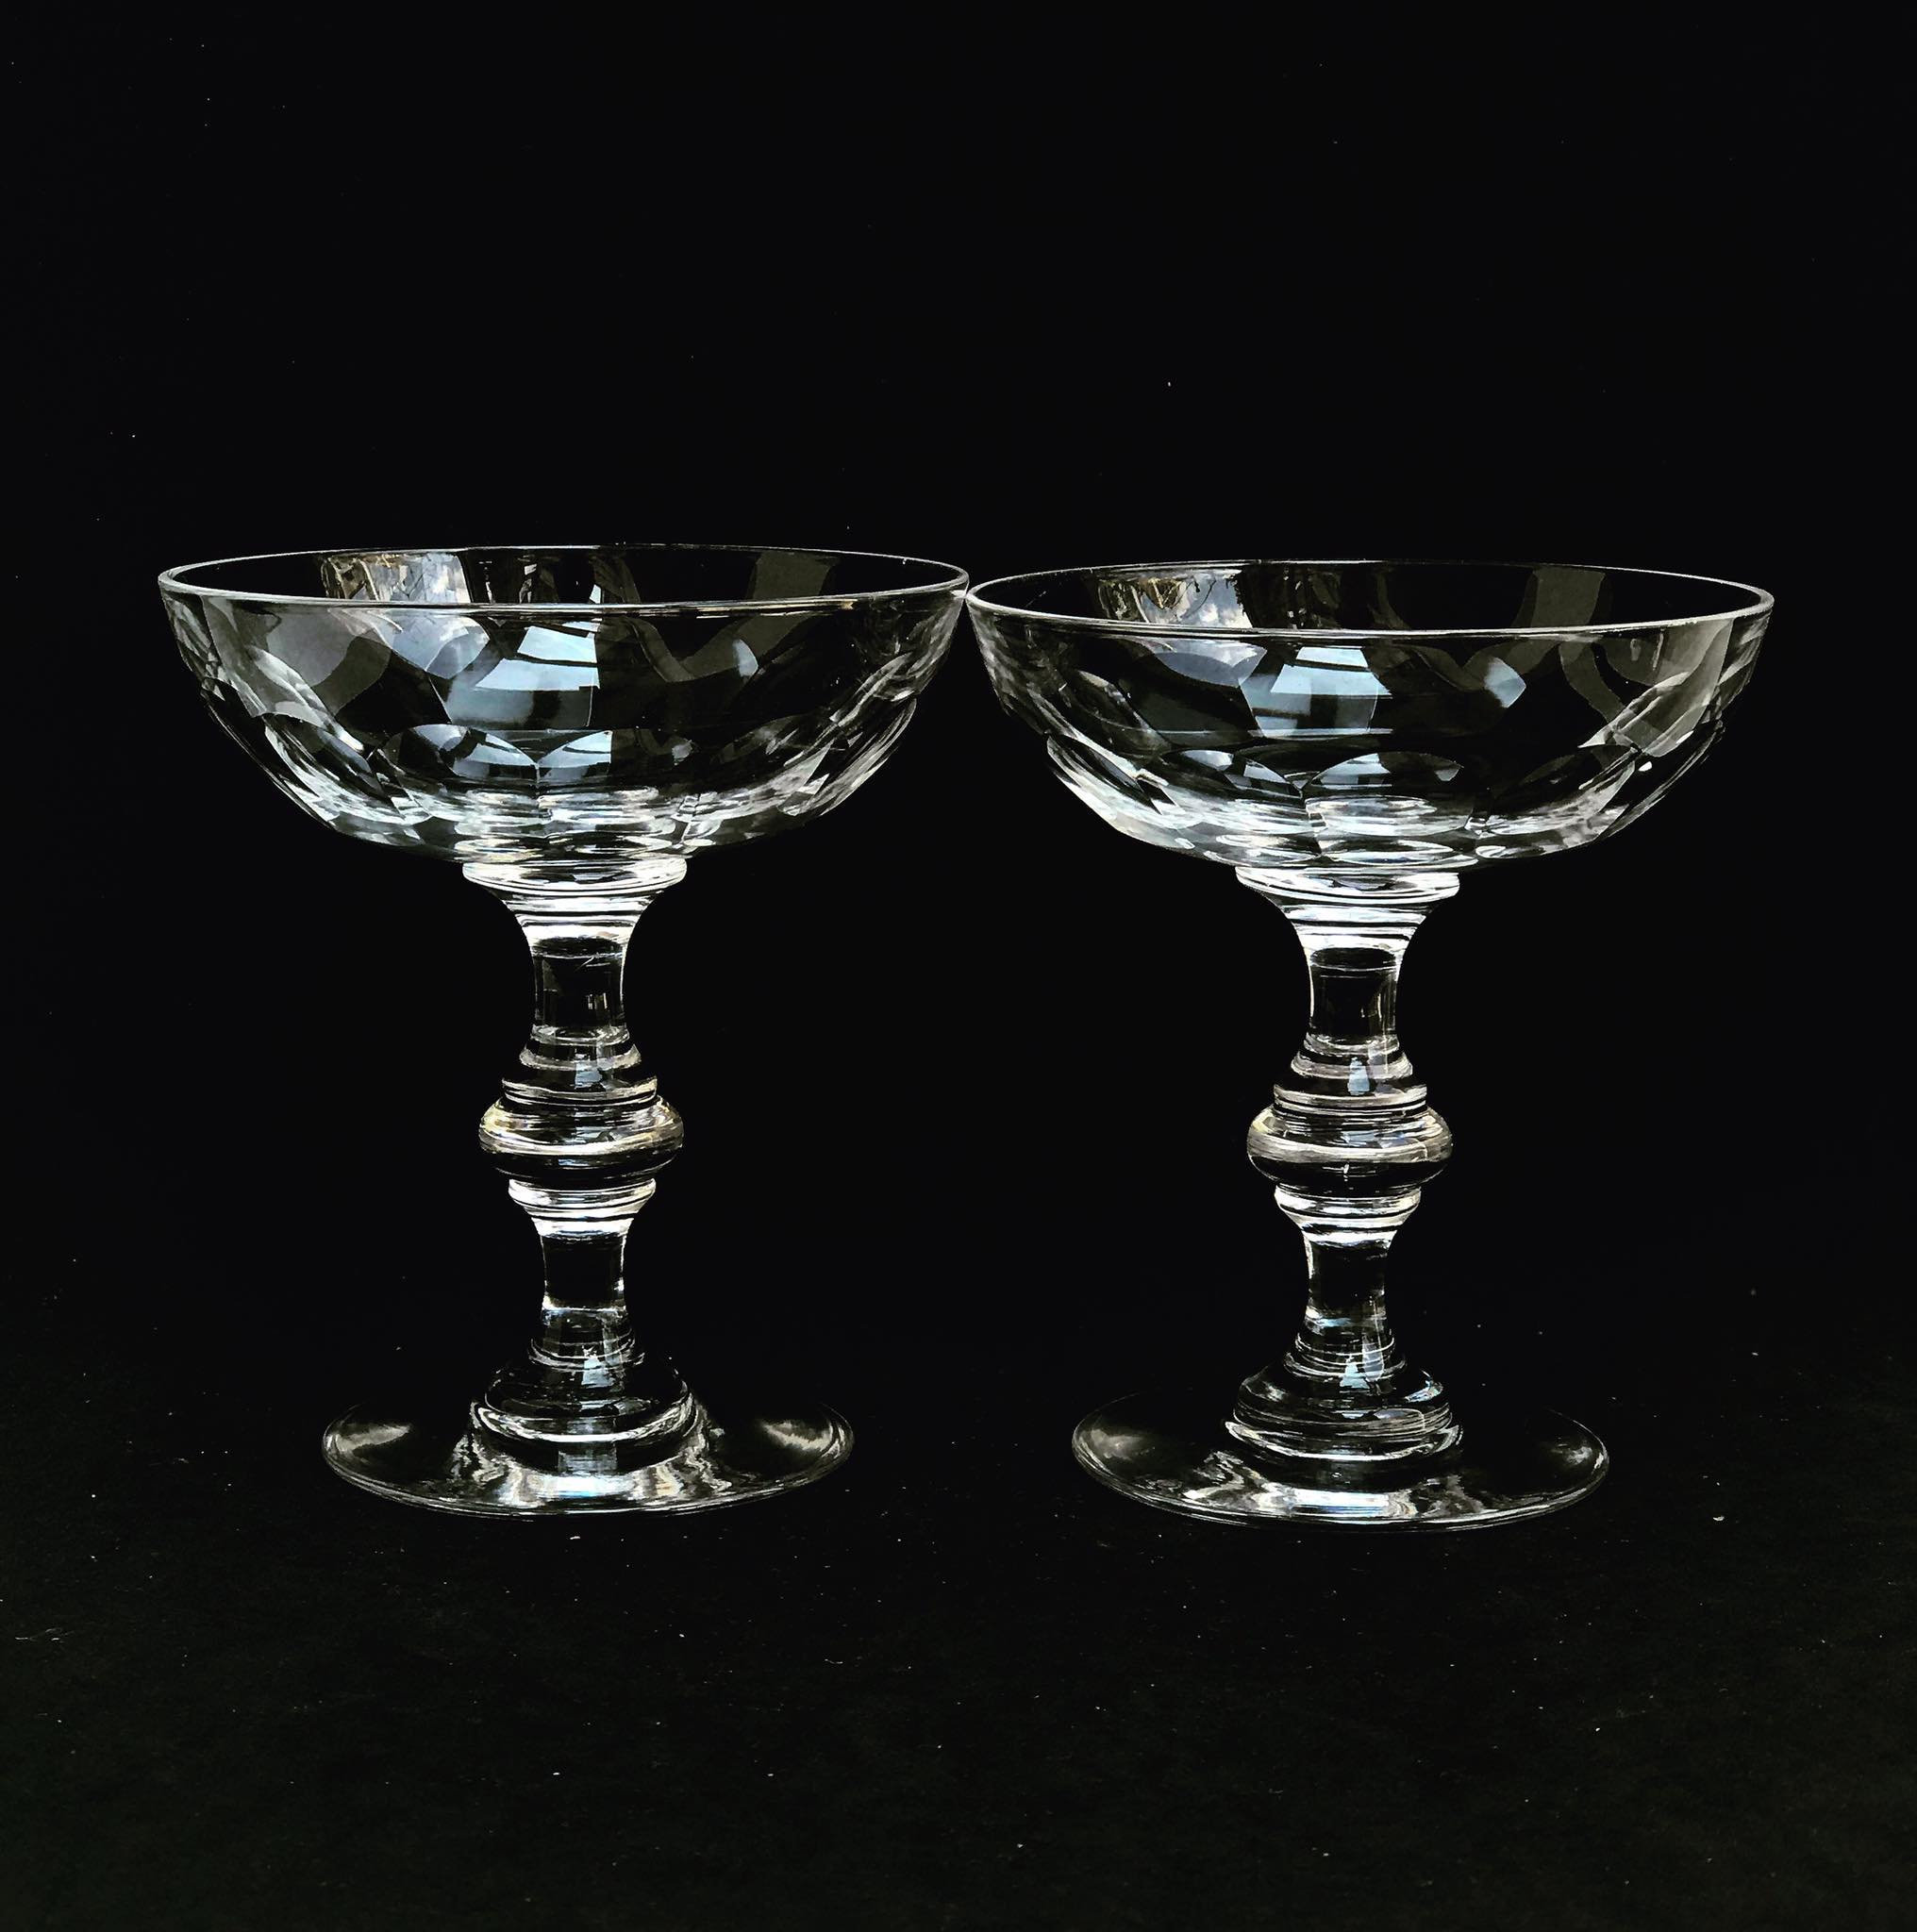 Champagne Glasses Set 2 Crystal Val Saint Lambert Liquor Cocktail Low Sherbet Coupes 1920s Art Deco Vintage Bar Cart Wedding Decor Gift Val Saint Lambert Vinterior